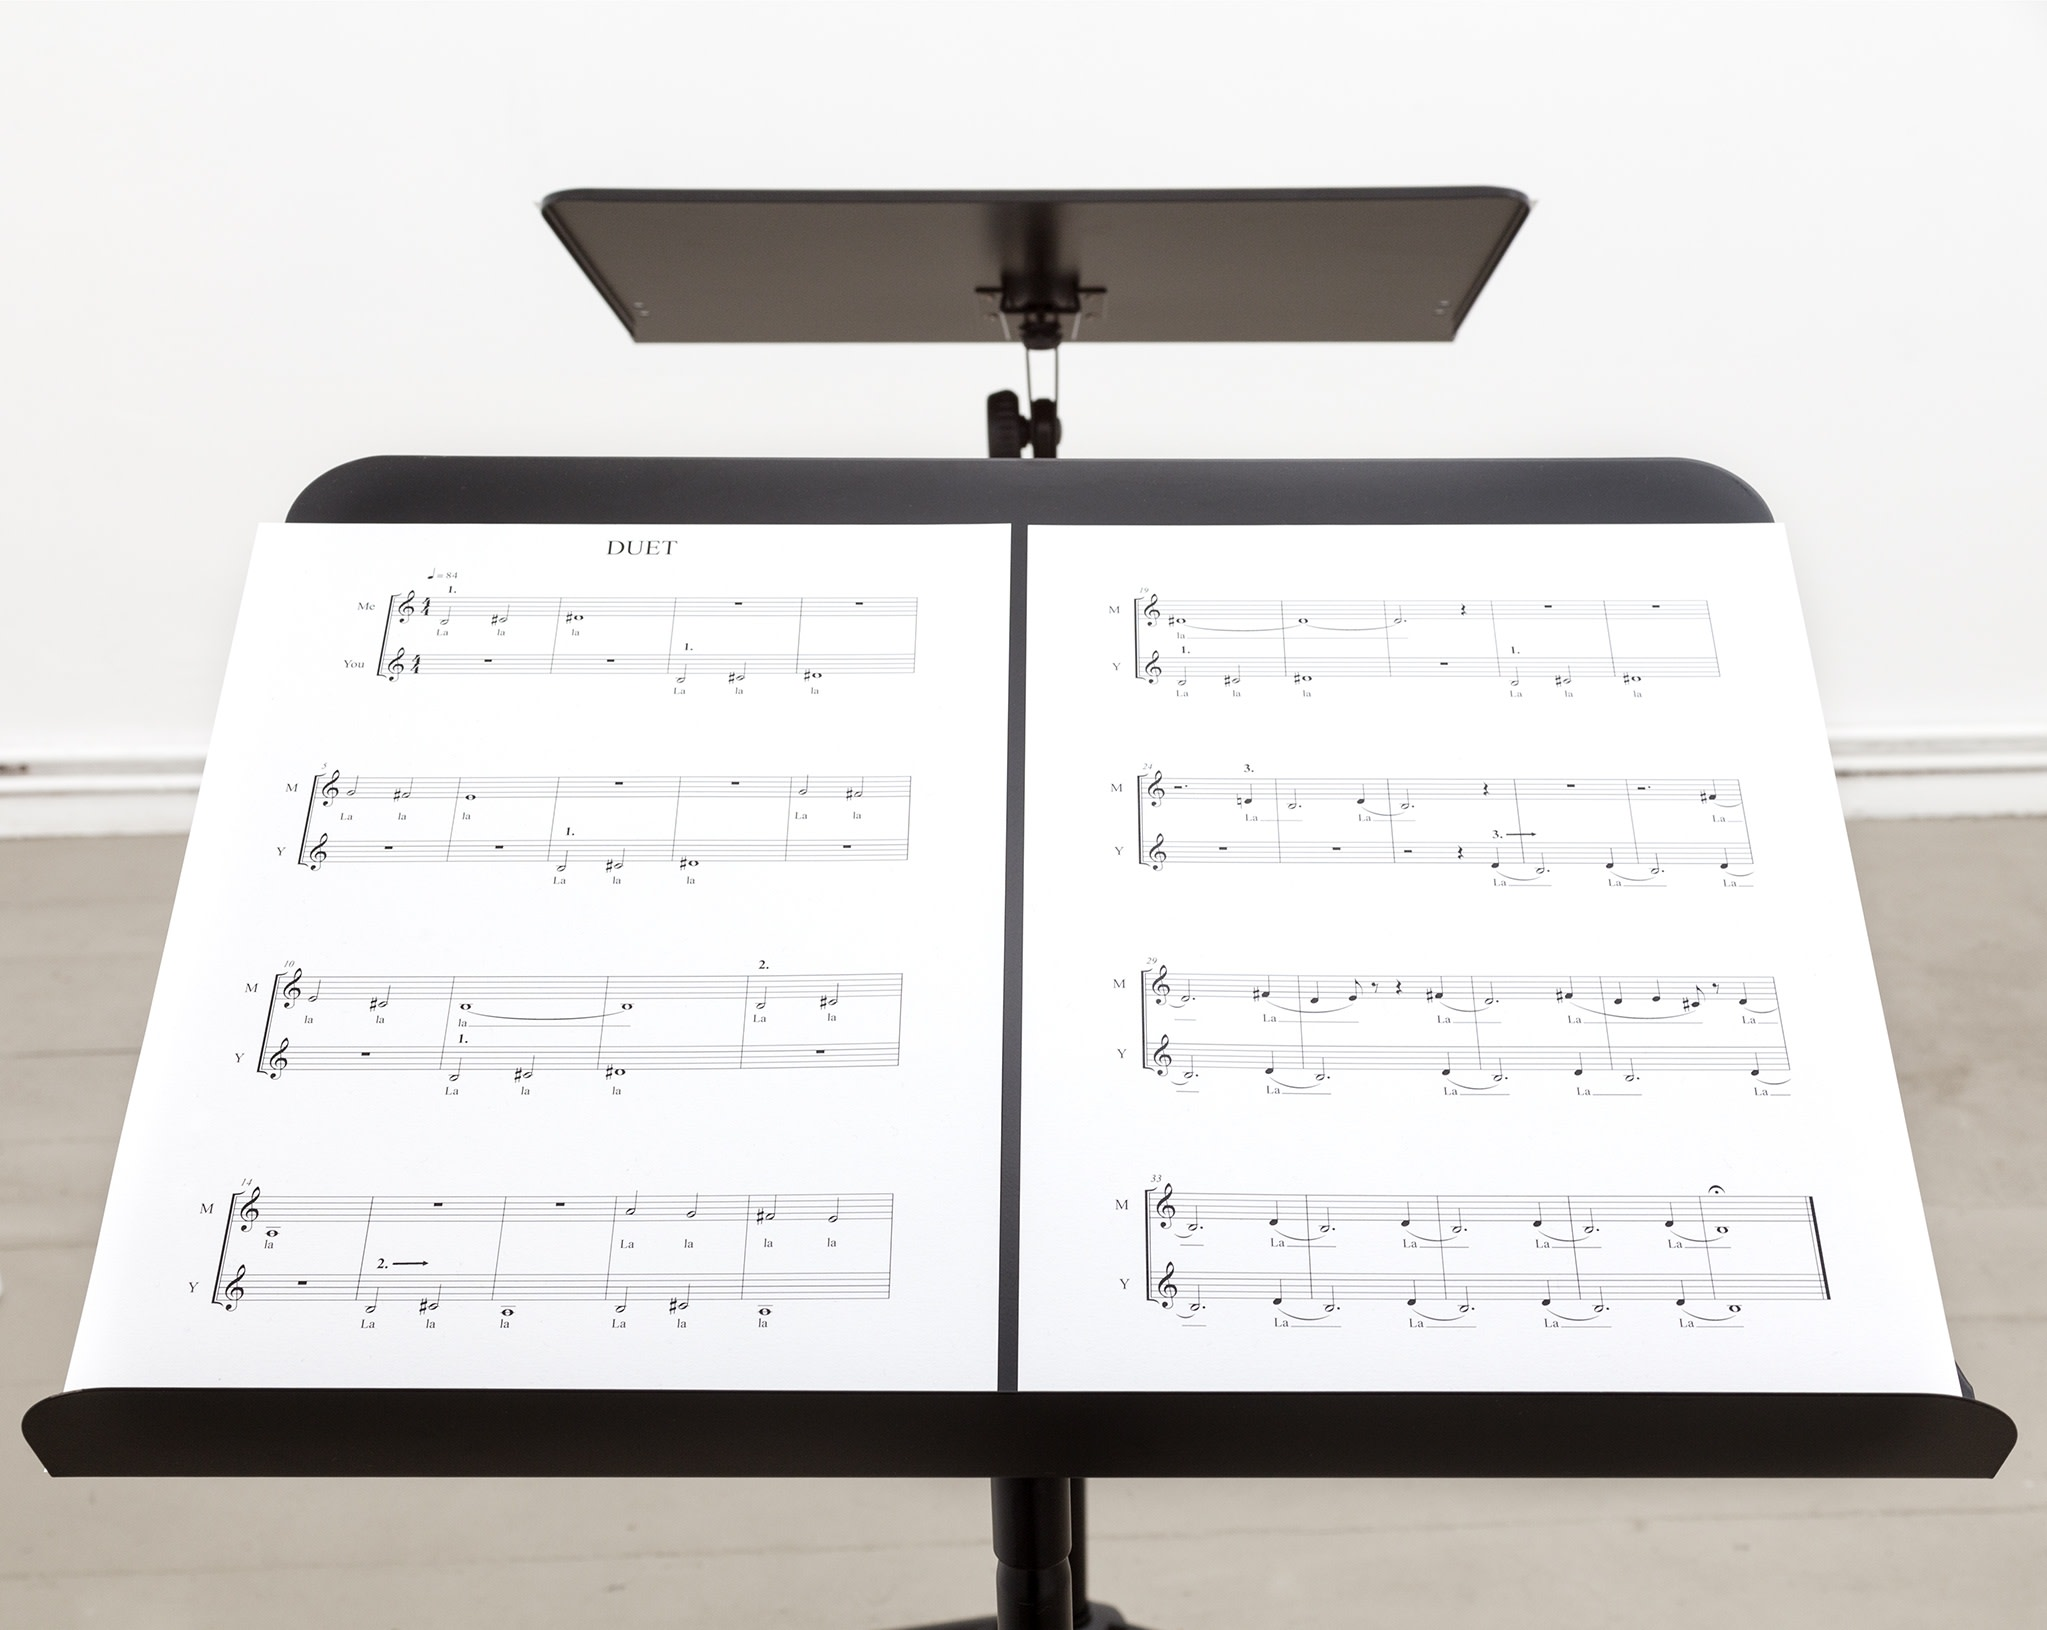 Detail: Ari Benjamin Meyers, DUET, 2014, 2 scores on paper, 2 music stands, pdf file, instructions 31,5 x 24 cm (12 1/4 x 9 1/2 in) each (score), edition of 5. Photo © Paula Winkler